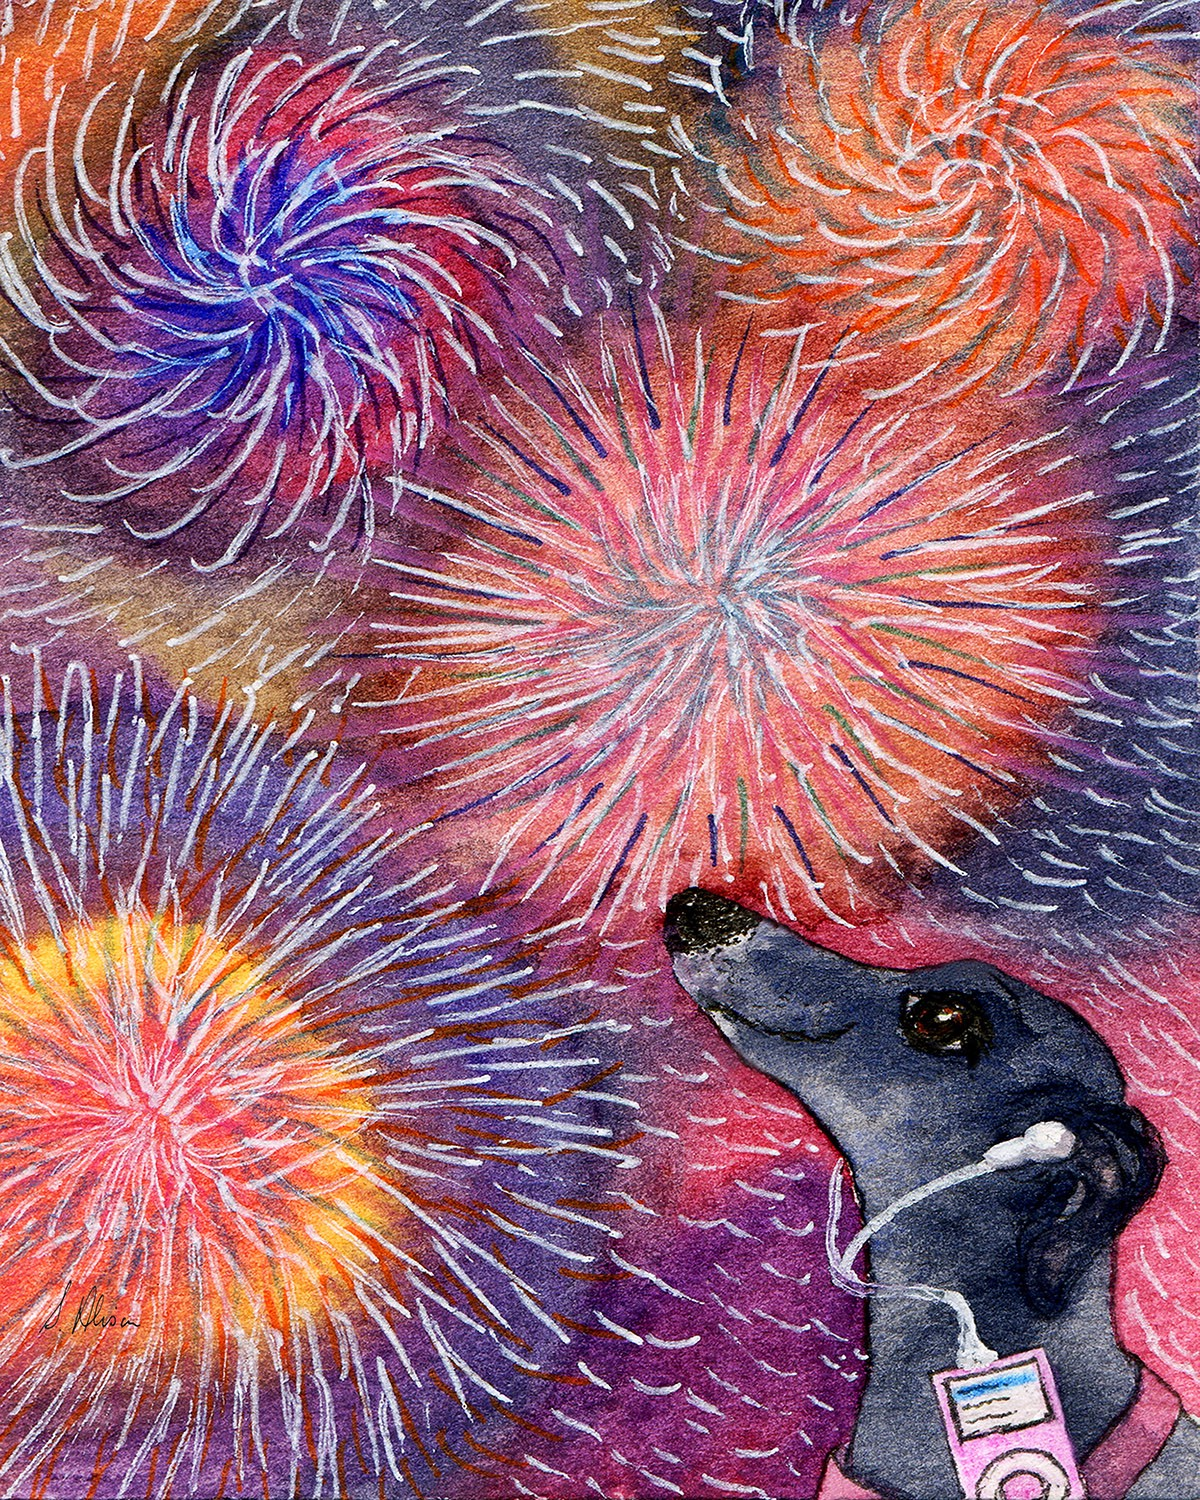 A dog listens to an ipod to block out the sound of fireworks